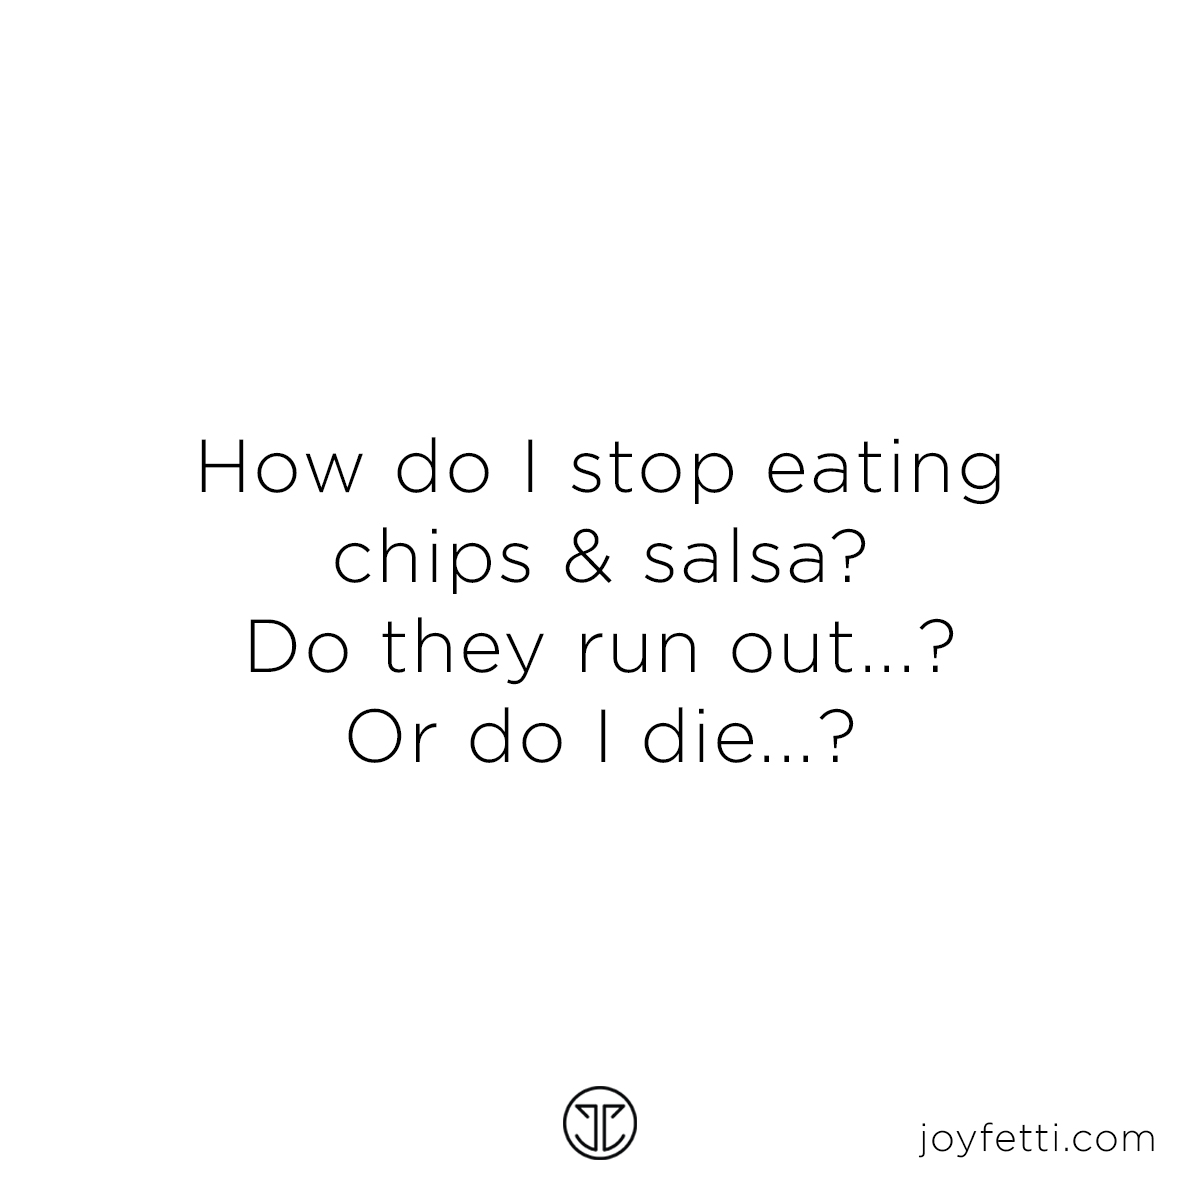 chips and salsa_joyfetti.com